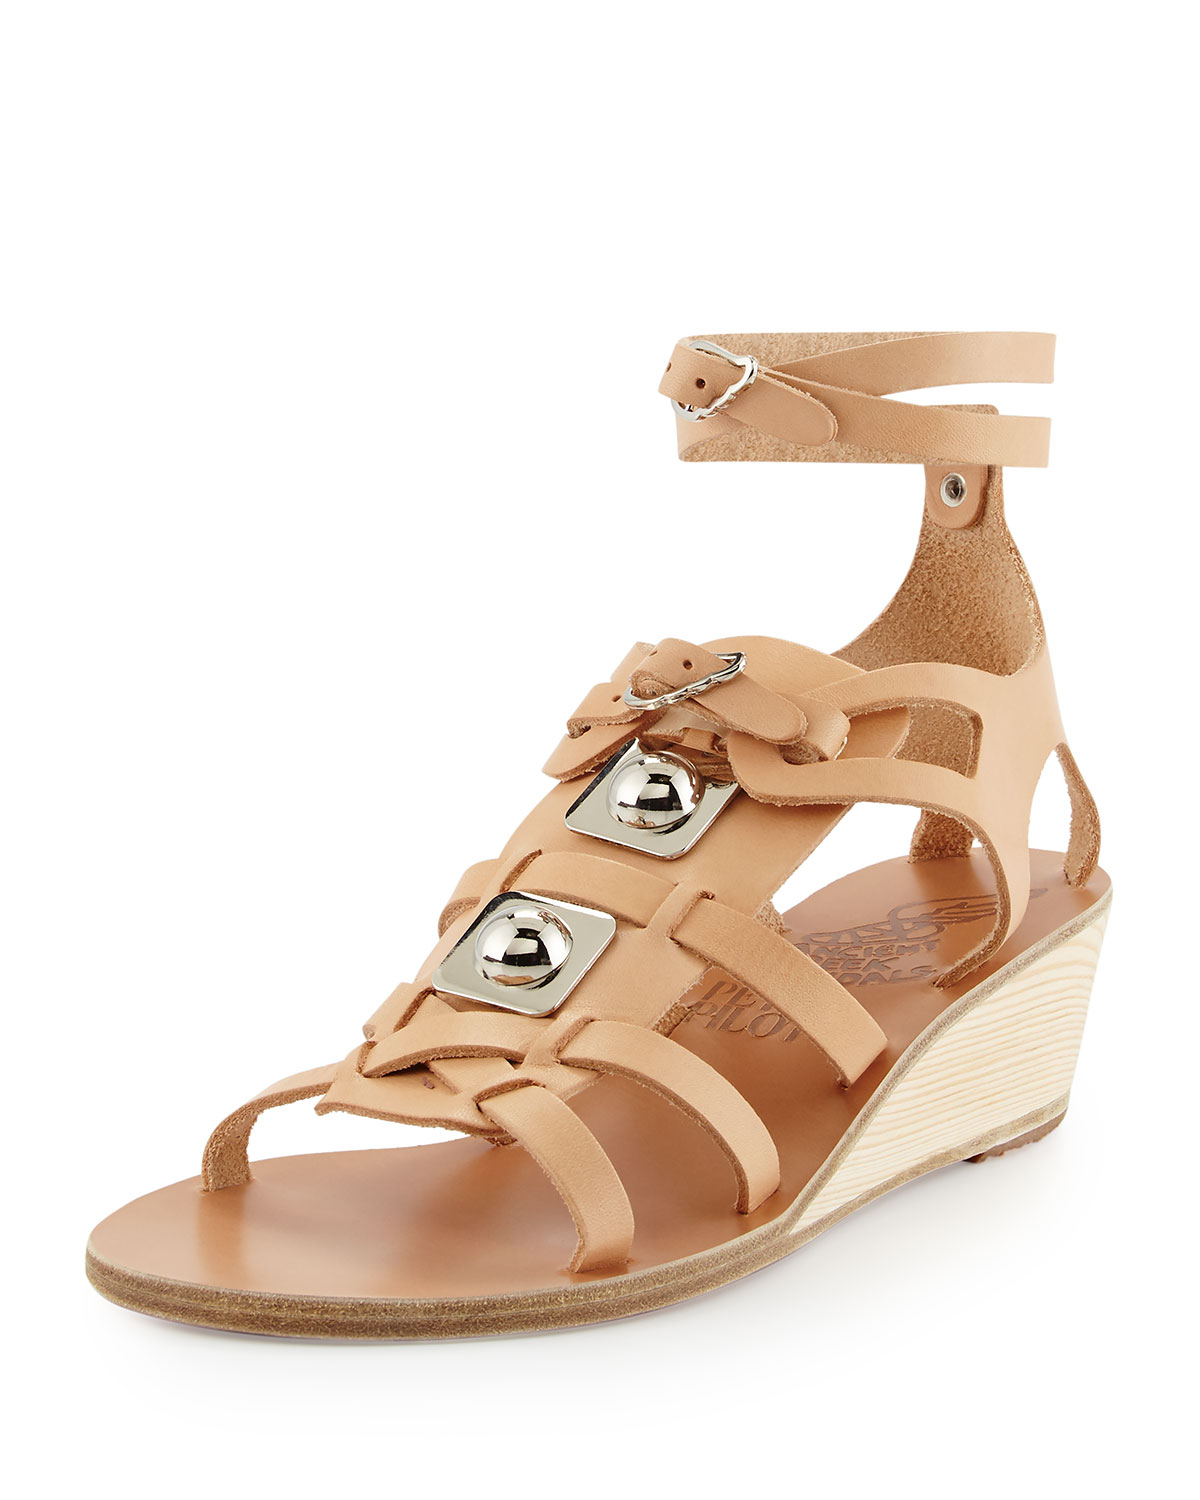 Peter Pilotto Leather Gladiator Wedge Sandal, Natural